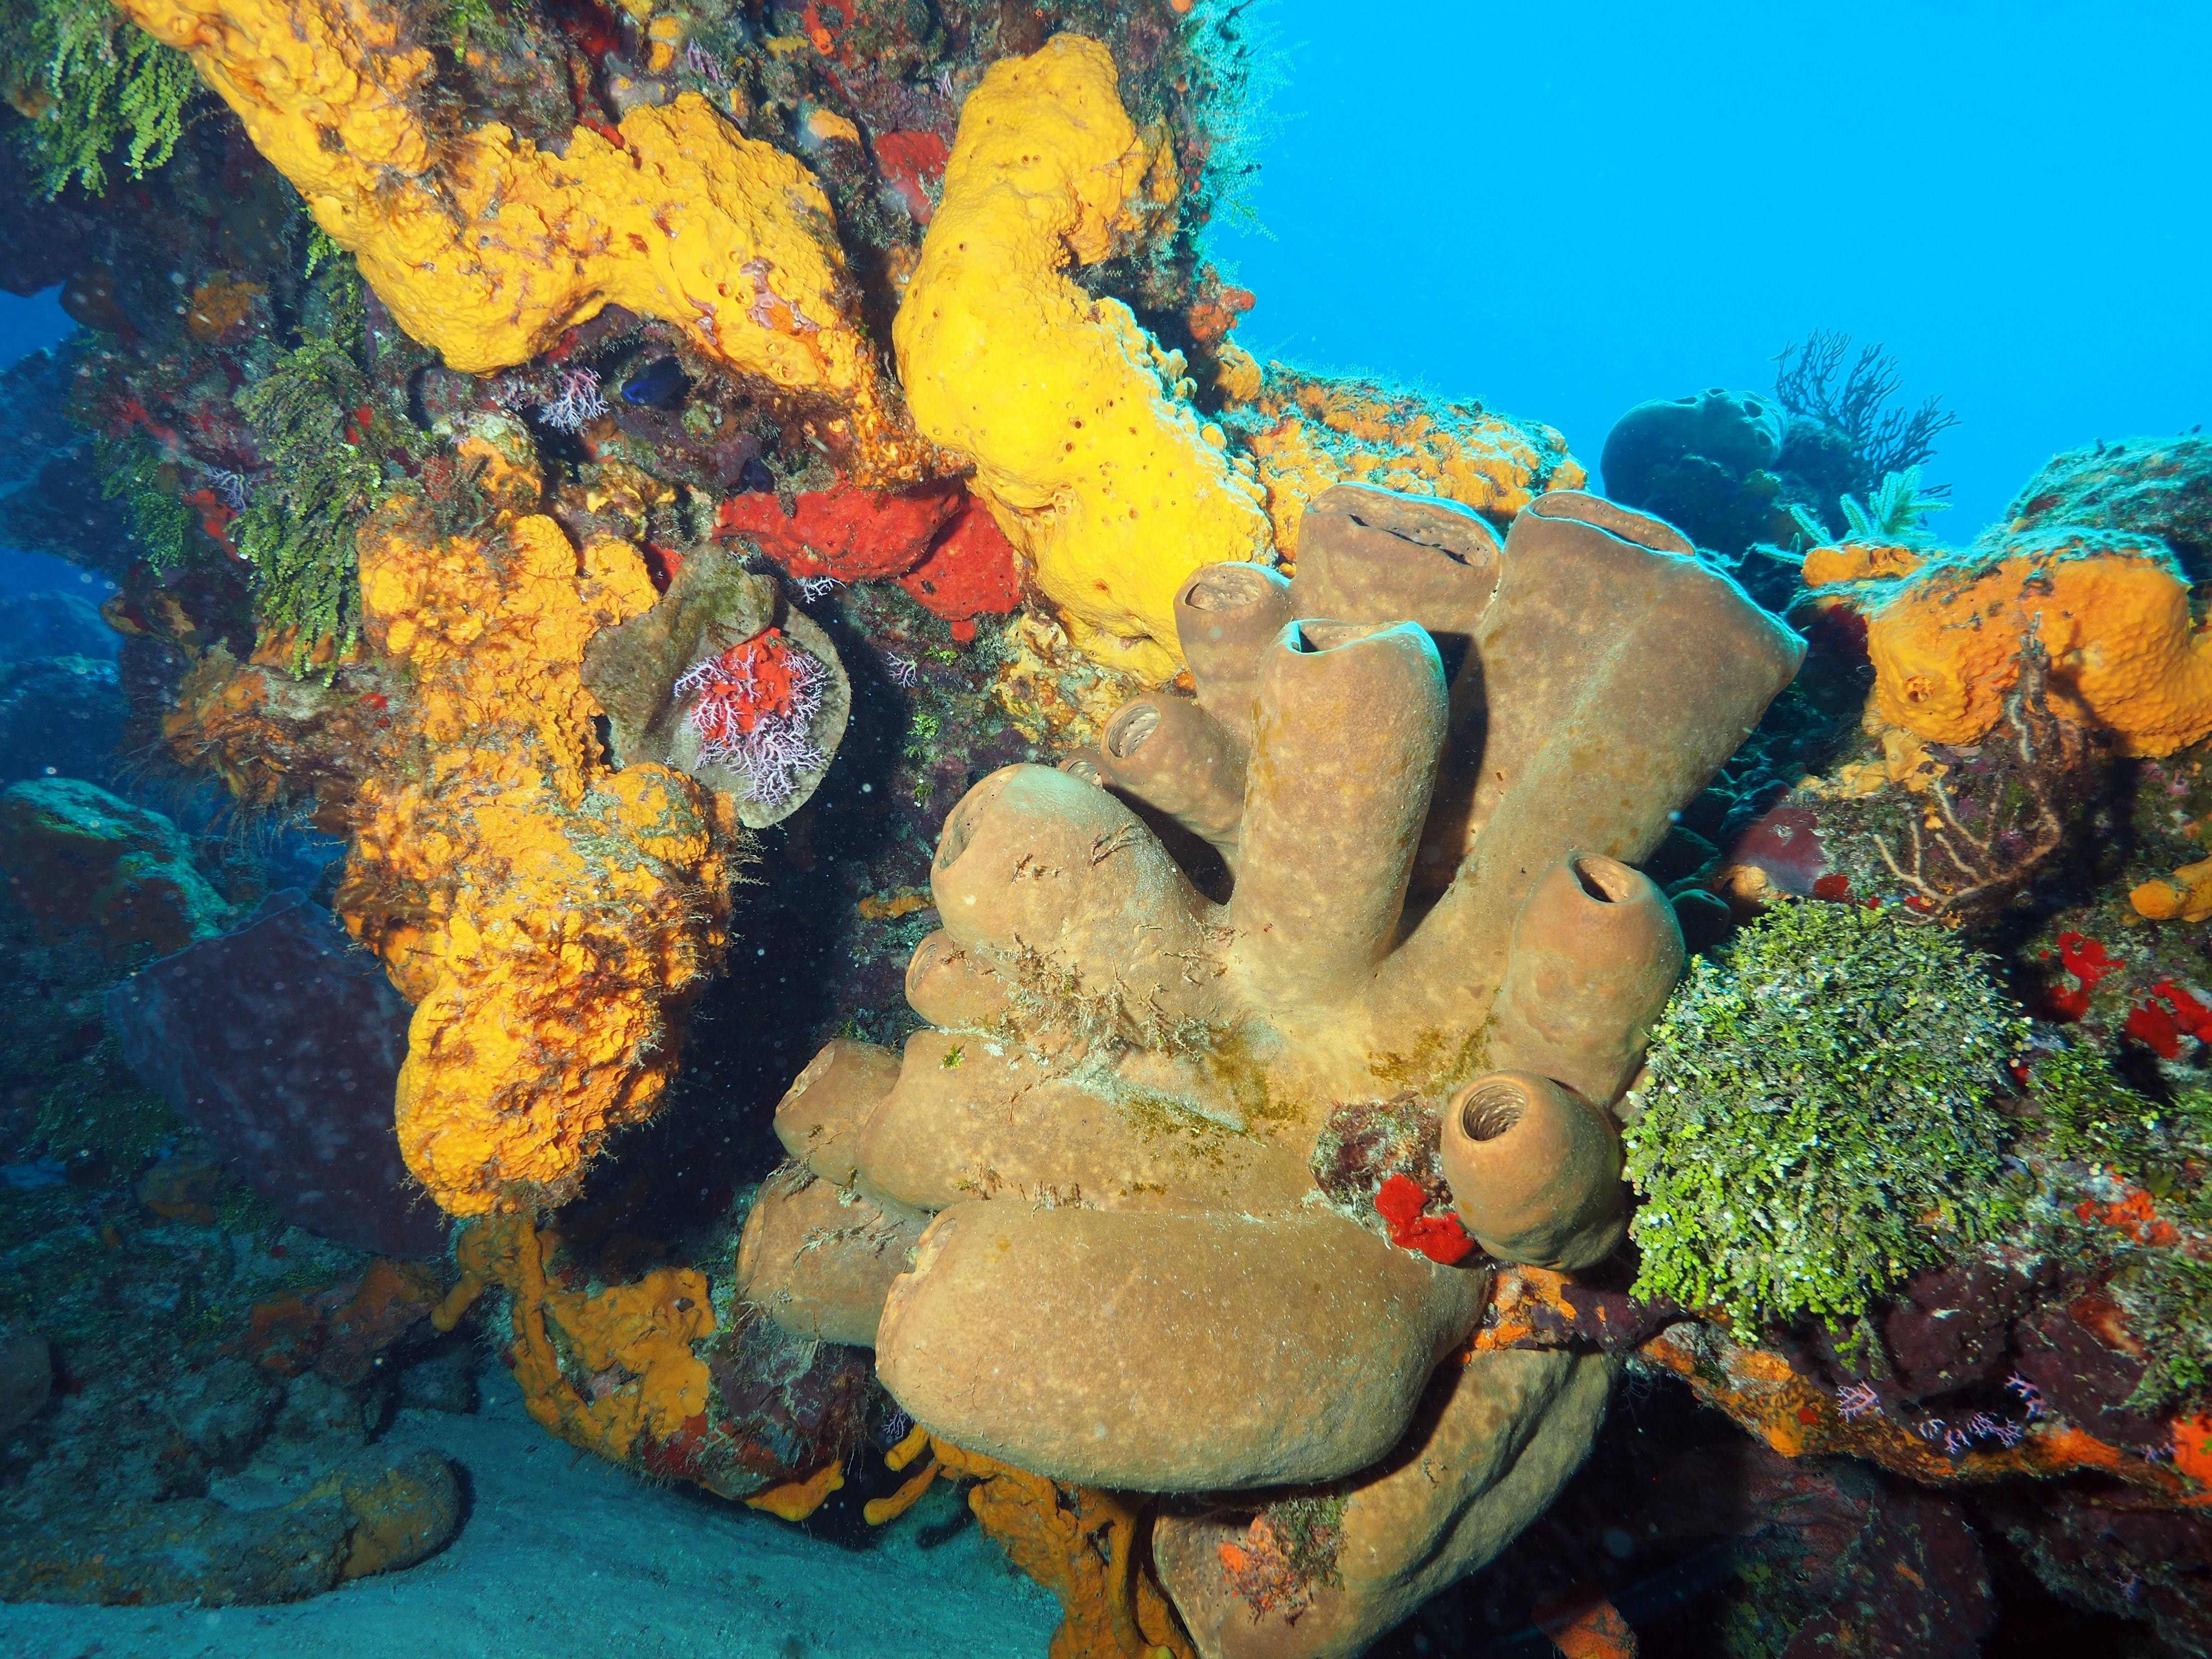 mesoamerican-barrier-reef-mexico-image